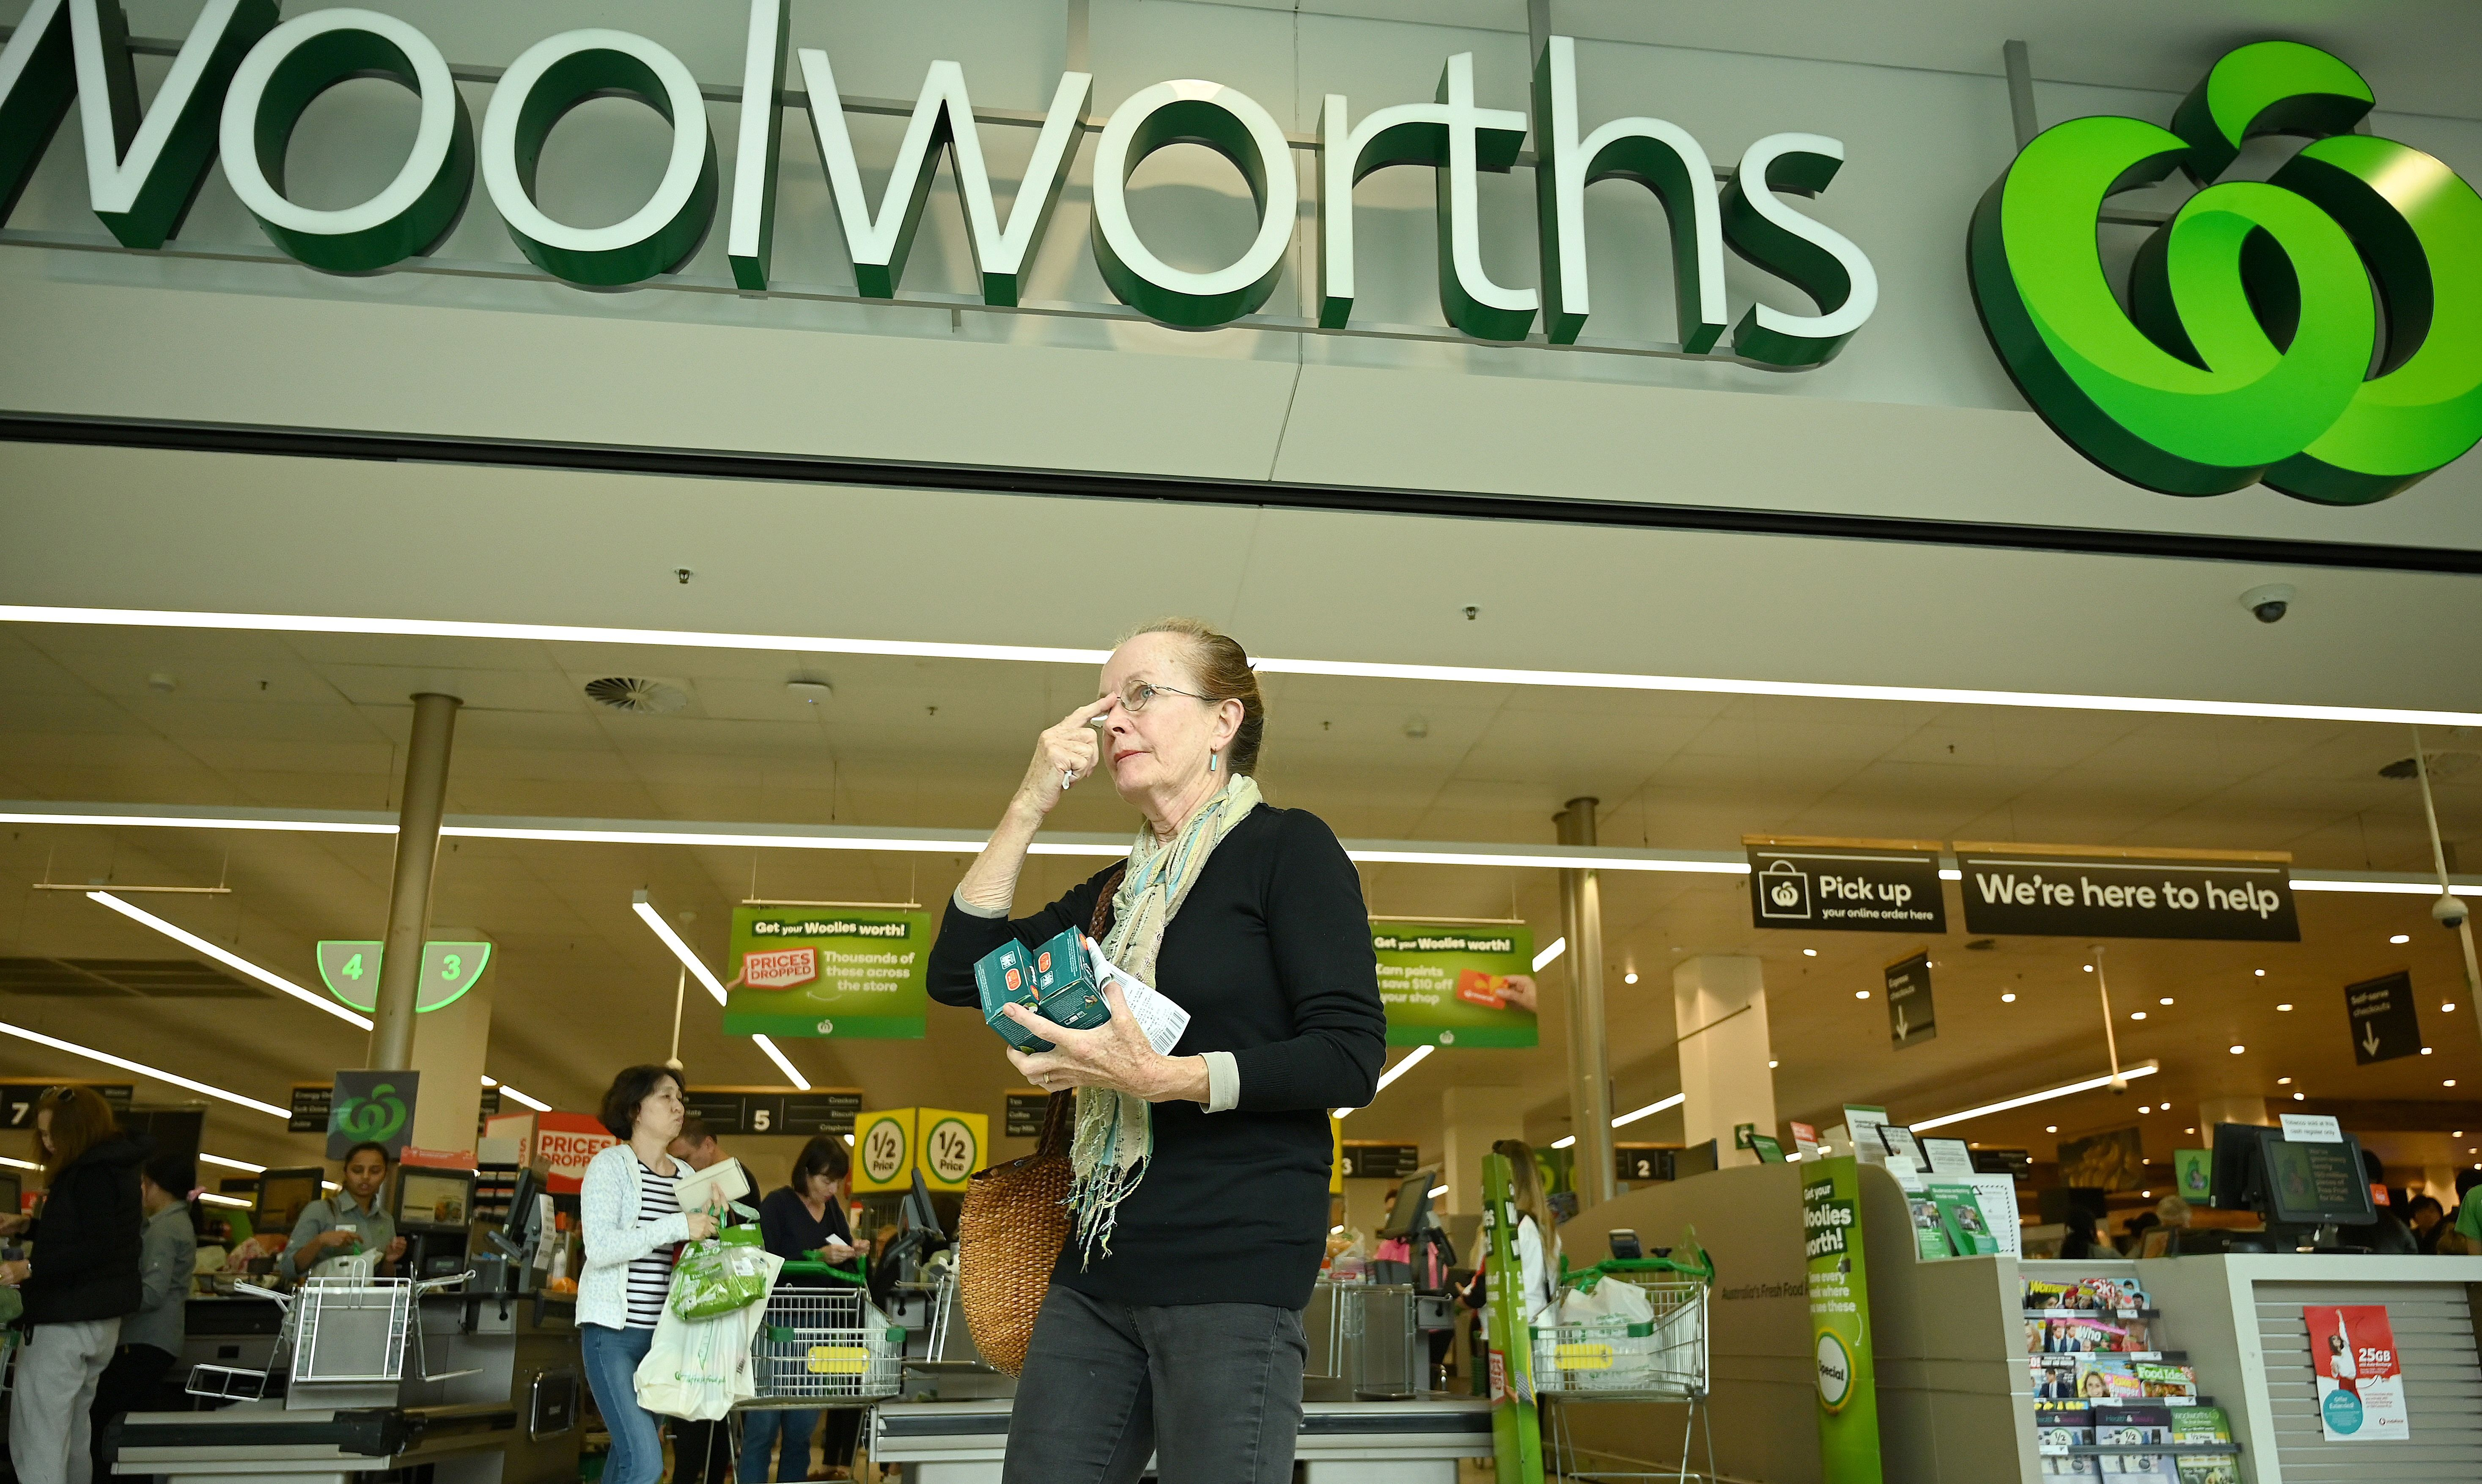 An elderly woman shops at a Woolworths supermarket in Sydney on March 17, 2020. (PETER PARKS/AFP via Getty Images)